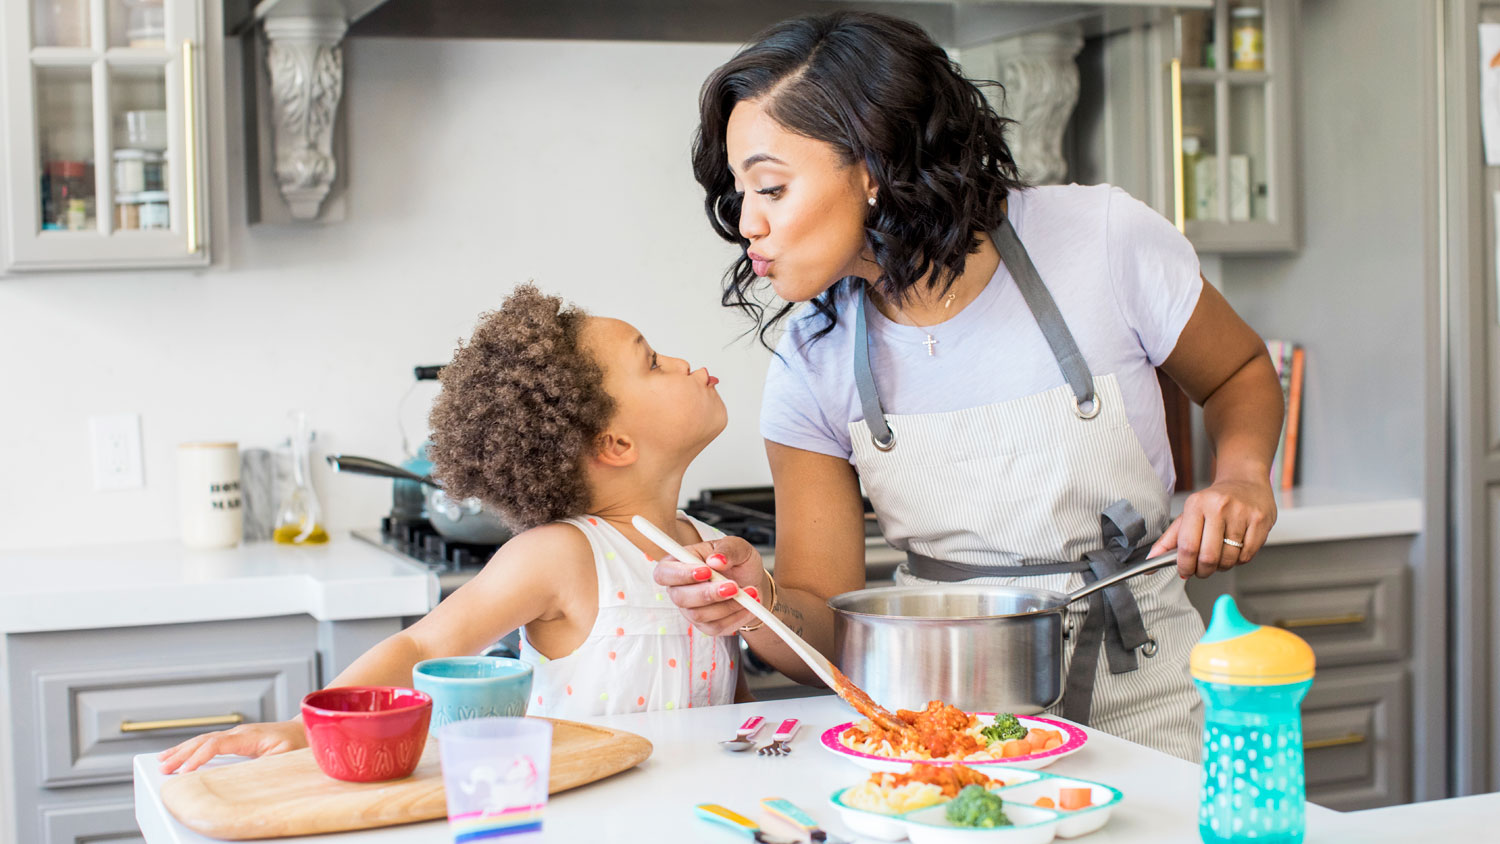 ayesha curry dishes on her  u0026 39 cheeky u0026 39  collection  family